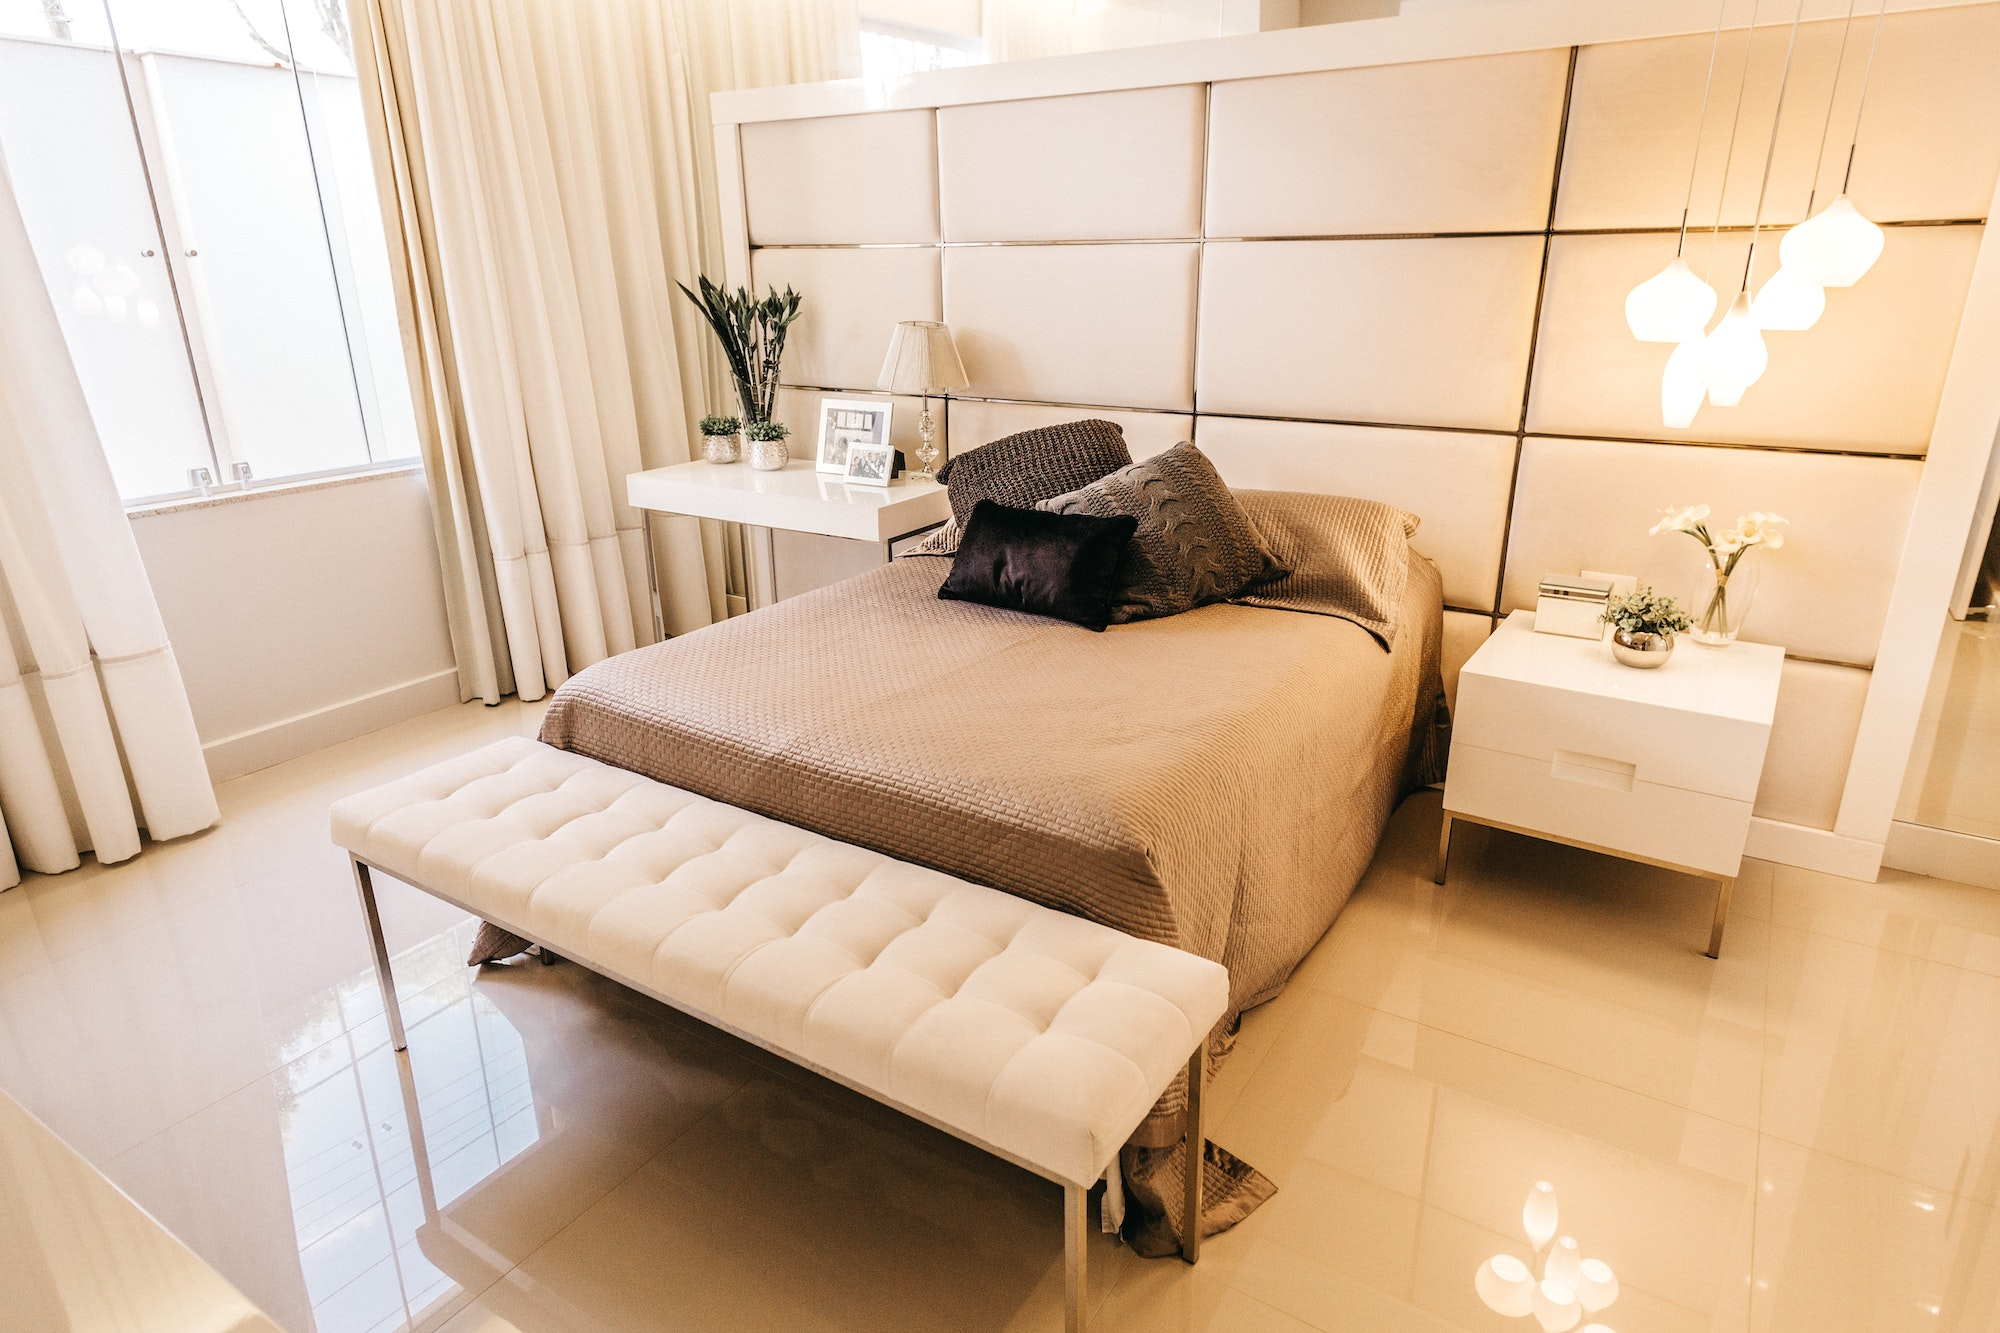 Sleep | How to create a luxurious bedroom in your home | Home Interior | Elle Blonde Luxury Lifestyle Destination Blog